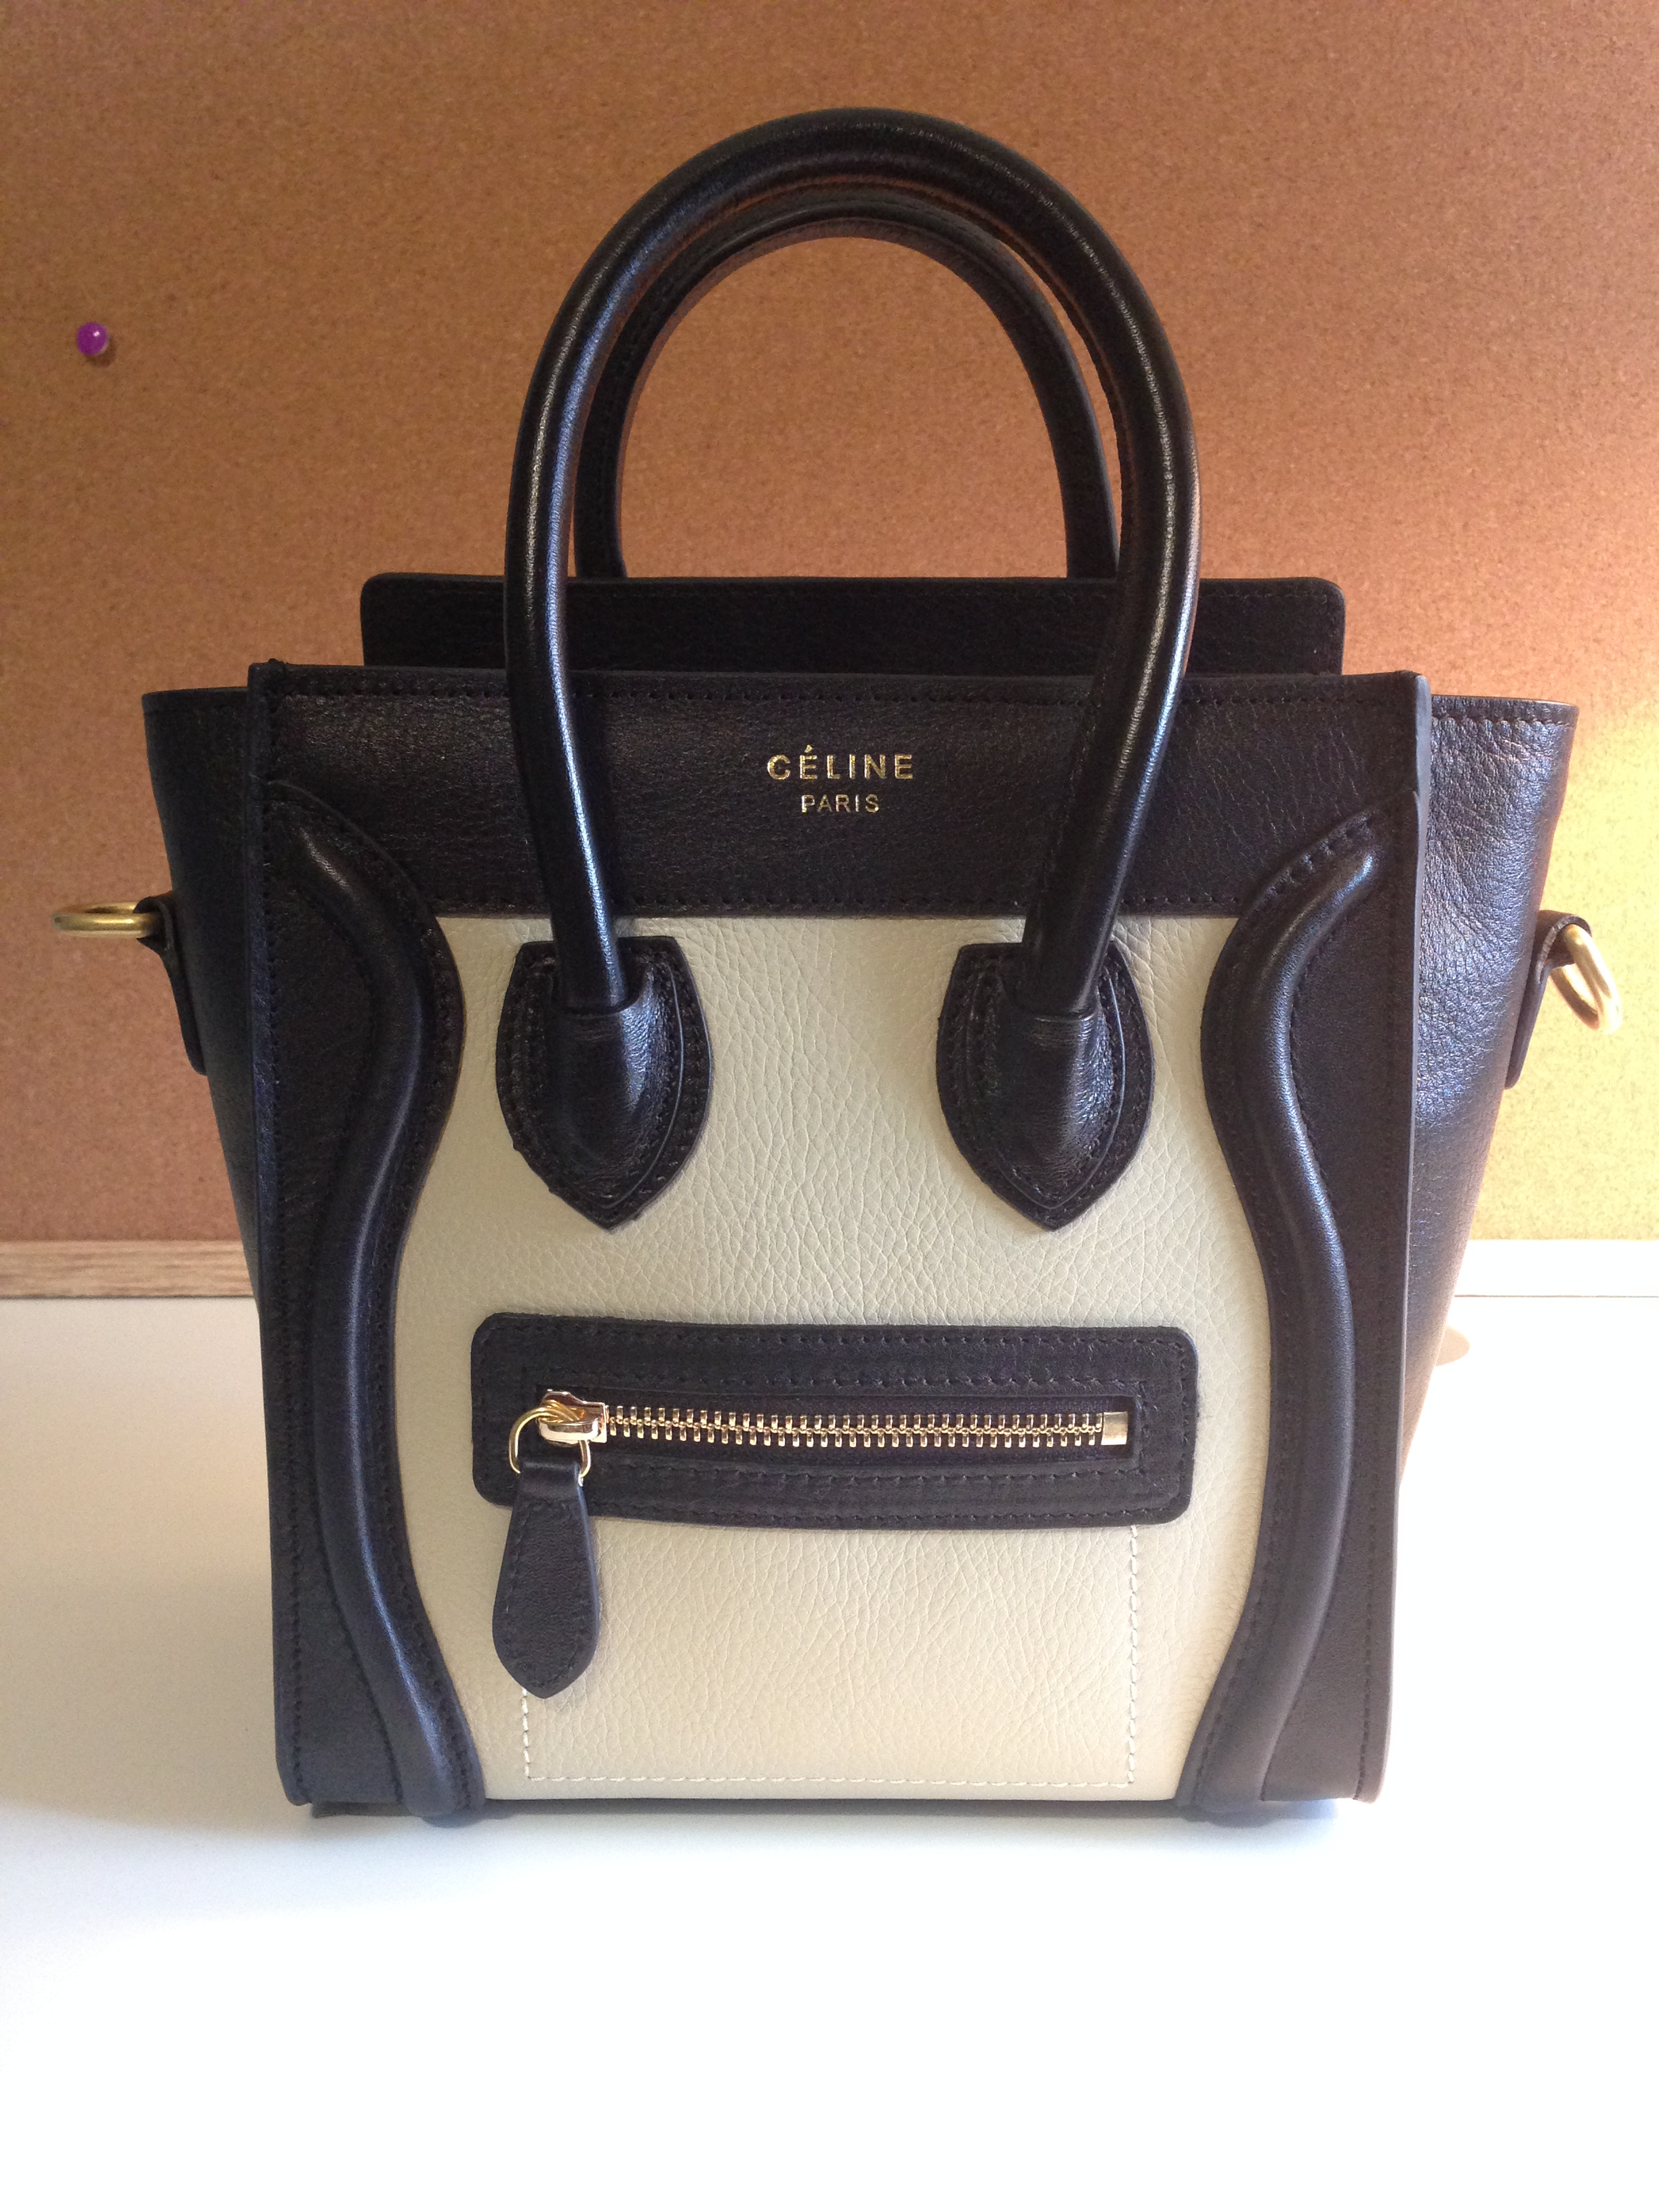 faux celine handbags - Celine Replica Bags: The Good, the Bad, and the Ugly! �C Authentic ...